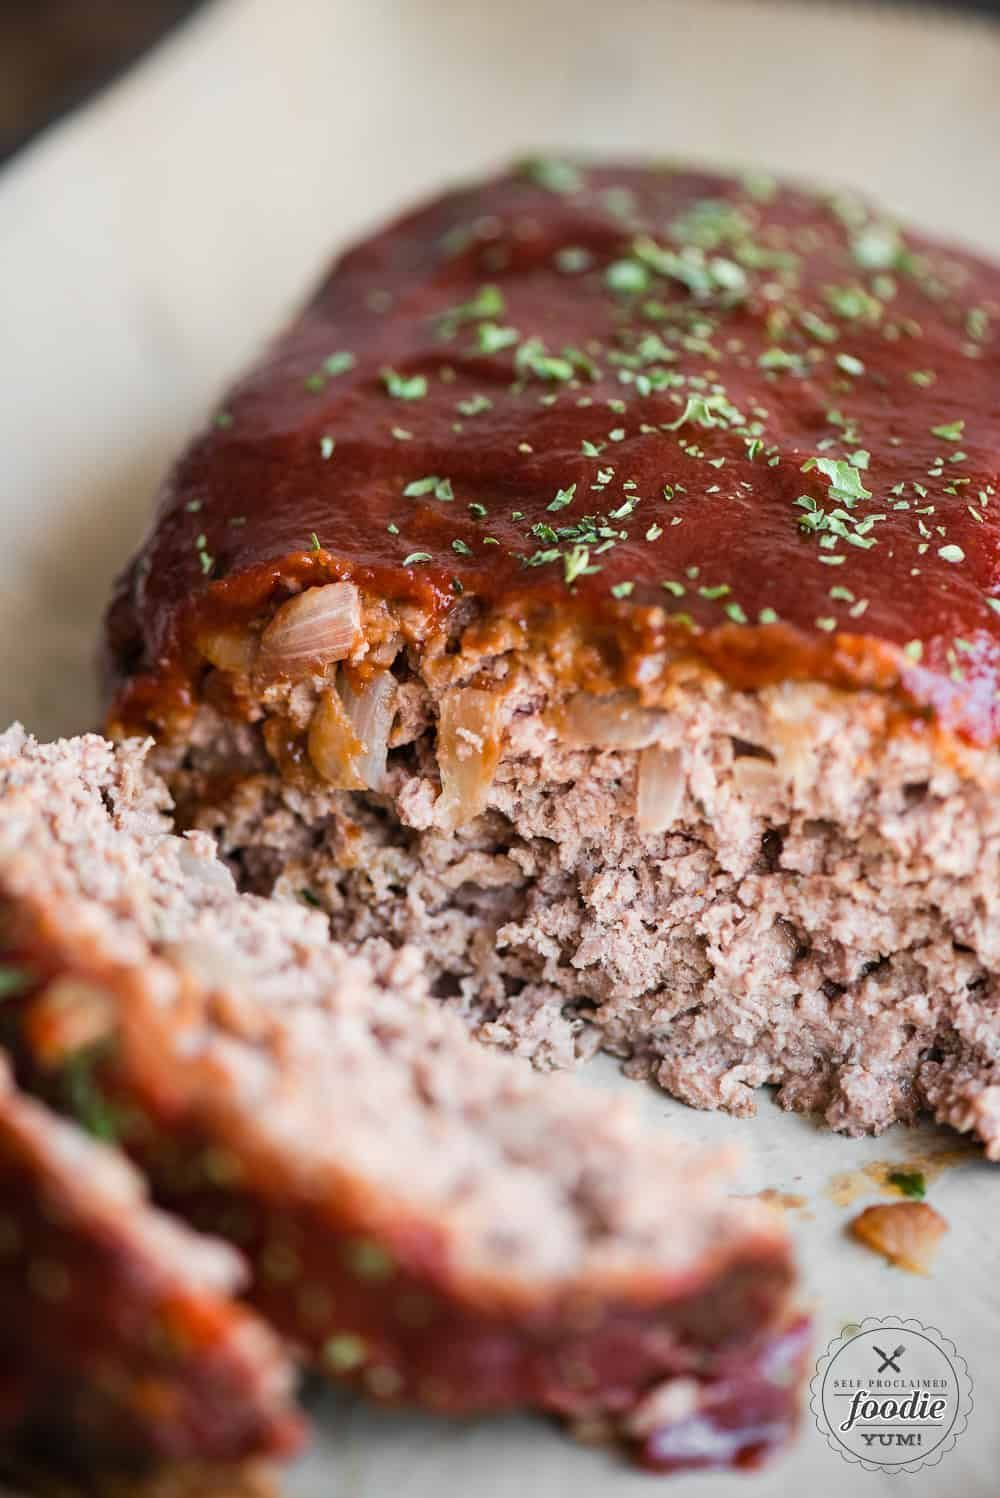 The best easy meatloaf recipe you can make using ground beef and a tasty meatloaf sauce on top is Granny's Classic Meatloaf. #meatloaf #best #howtomake #easy #sauce #classic #groundbeef #recipe #ketchup #1poundmeatloaf